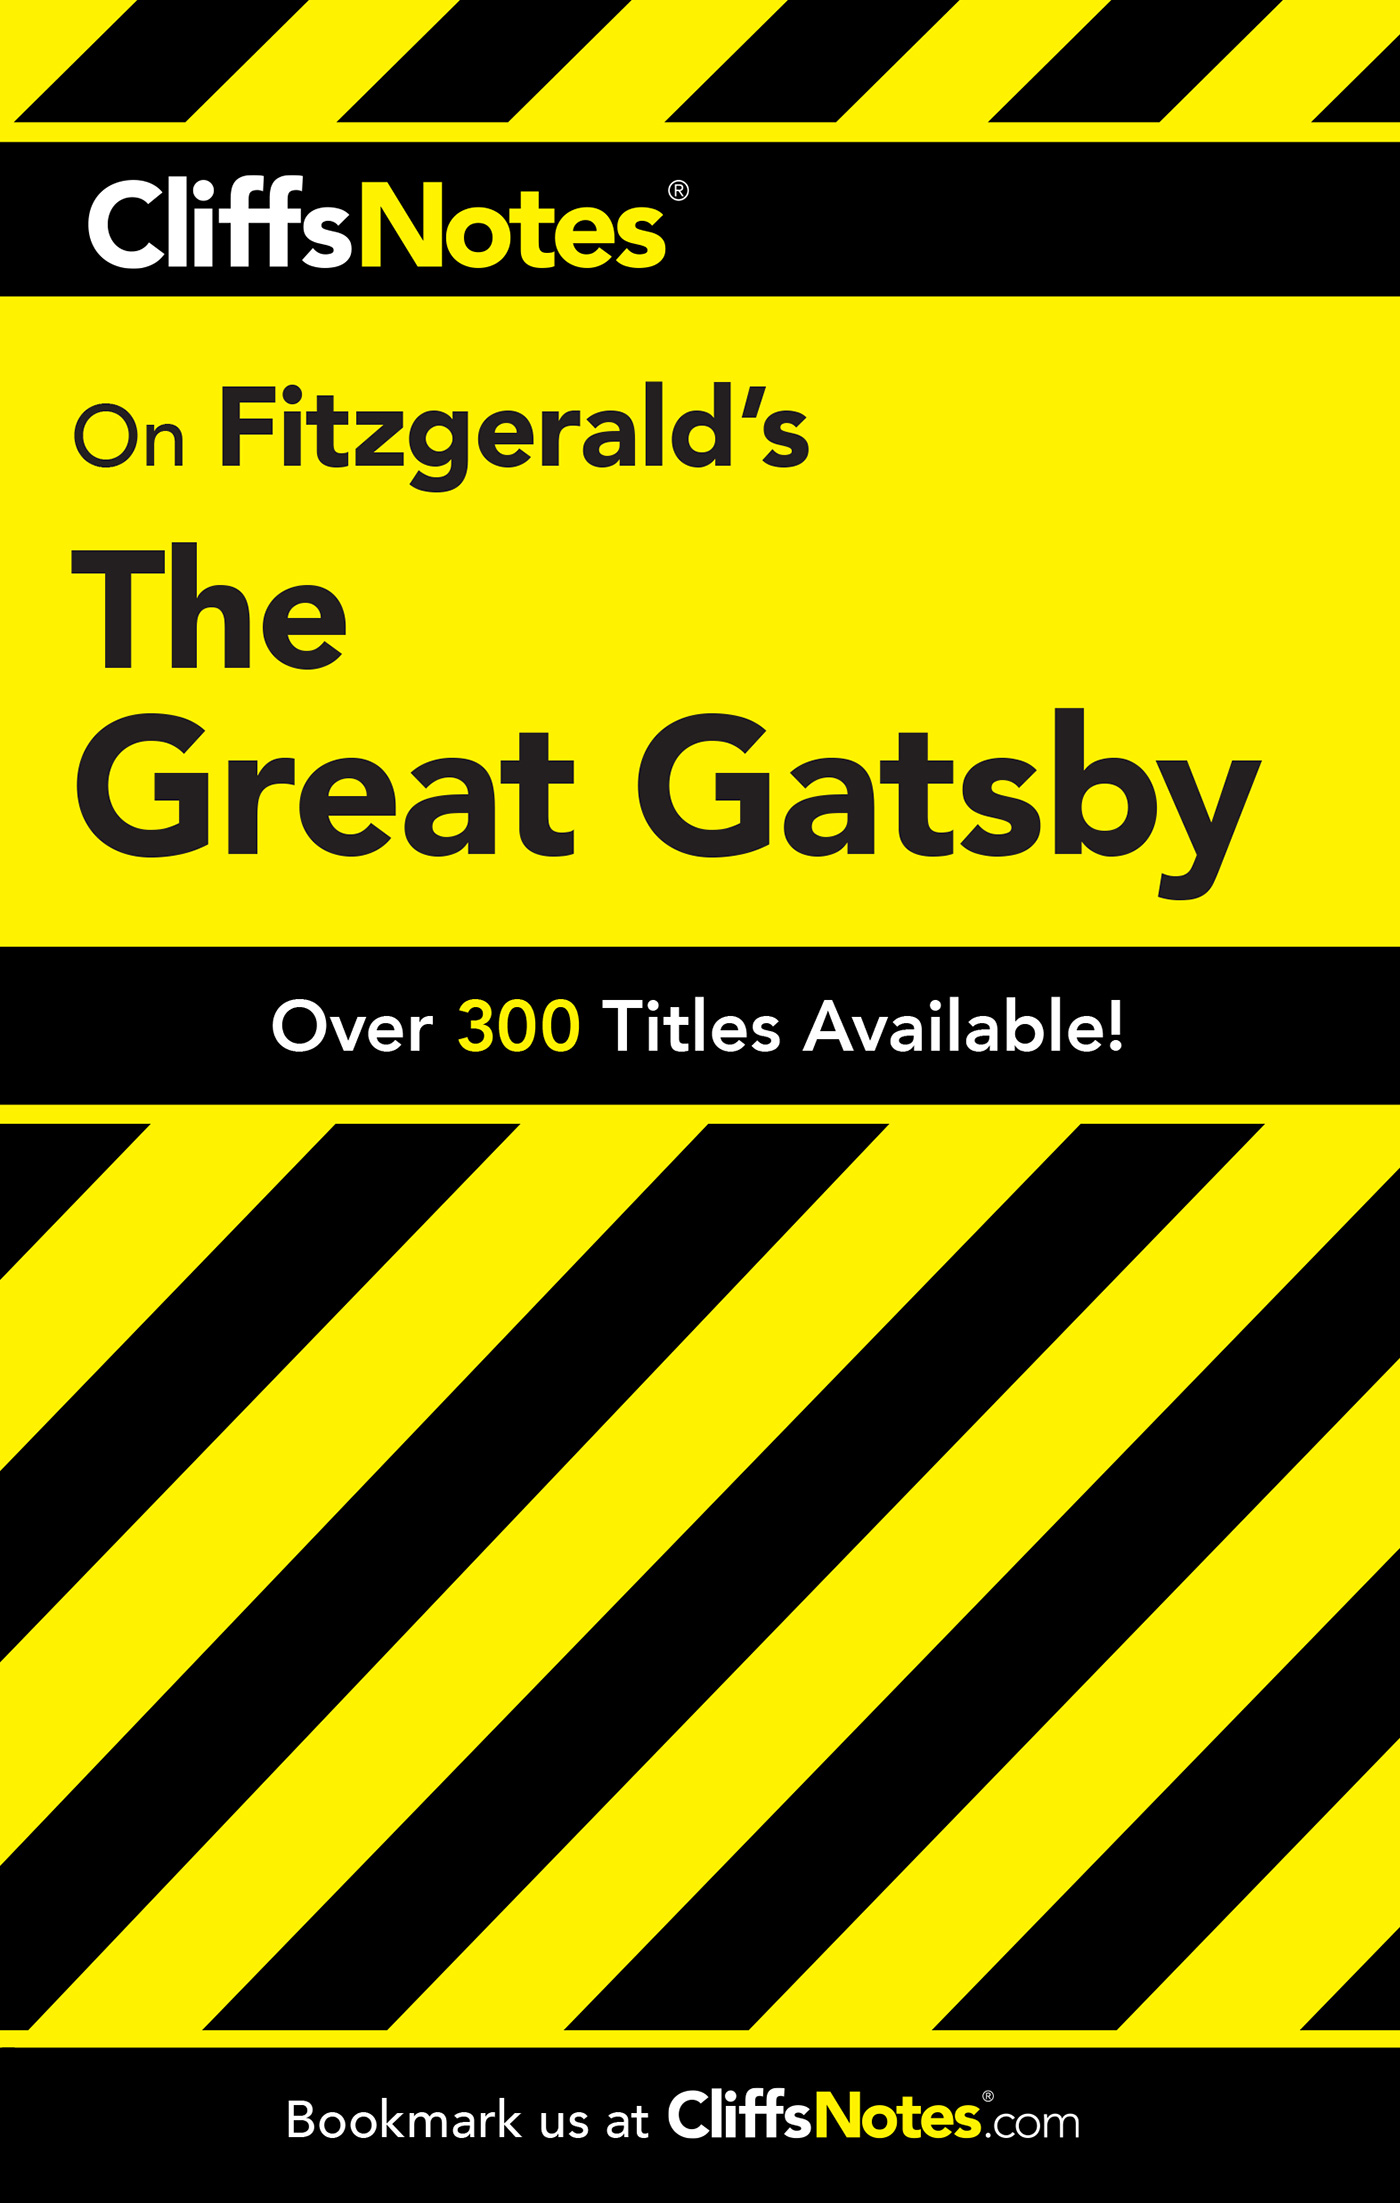 CliffsNotes on Fitzgerald's The Great Gatsby-9780764586019